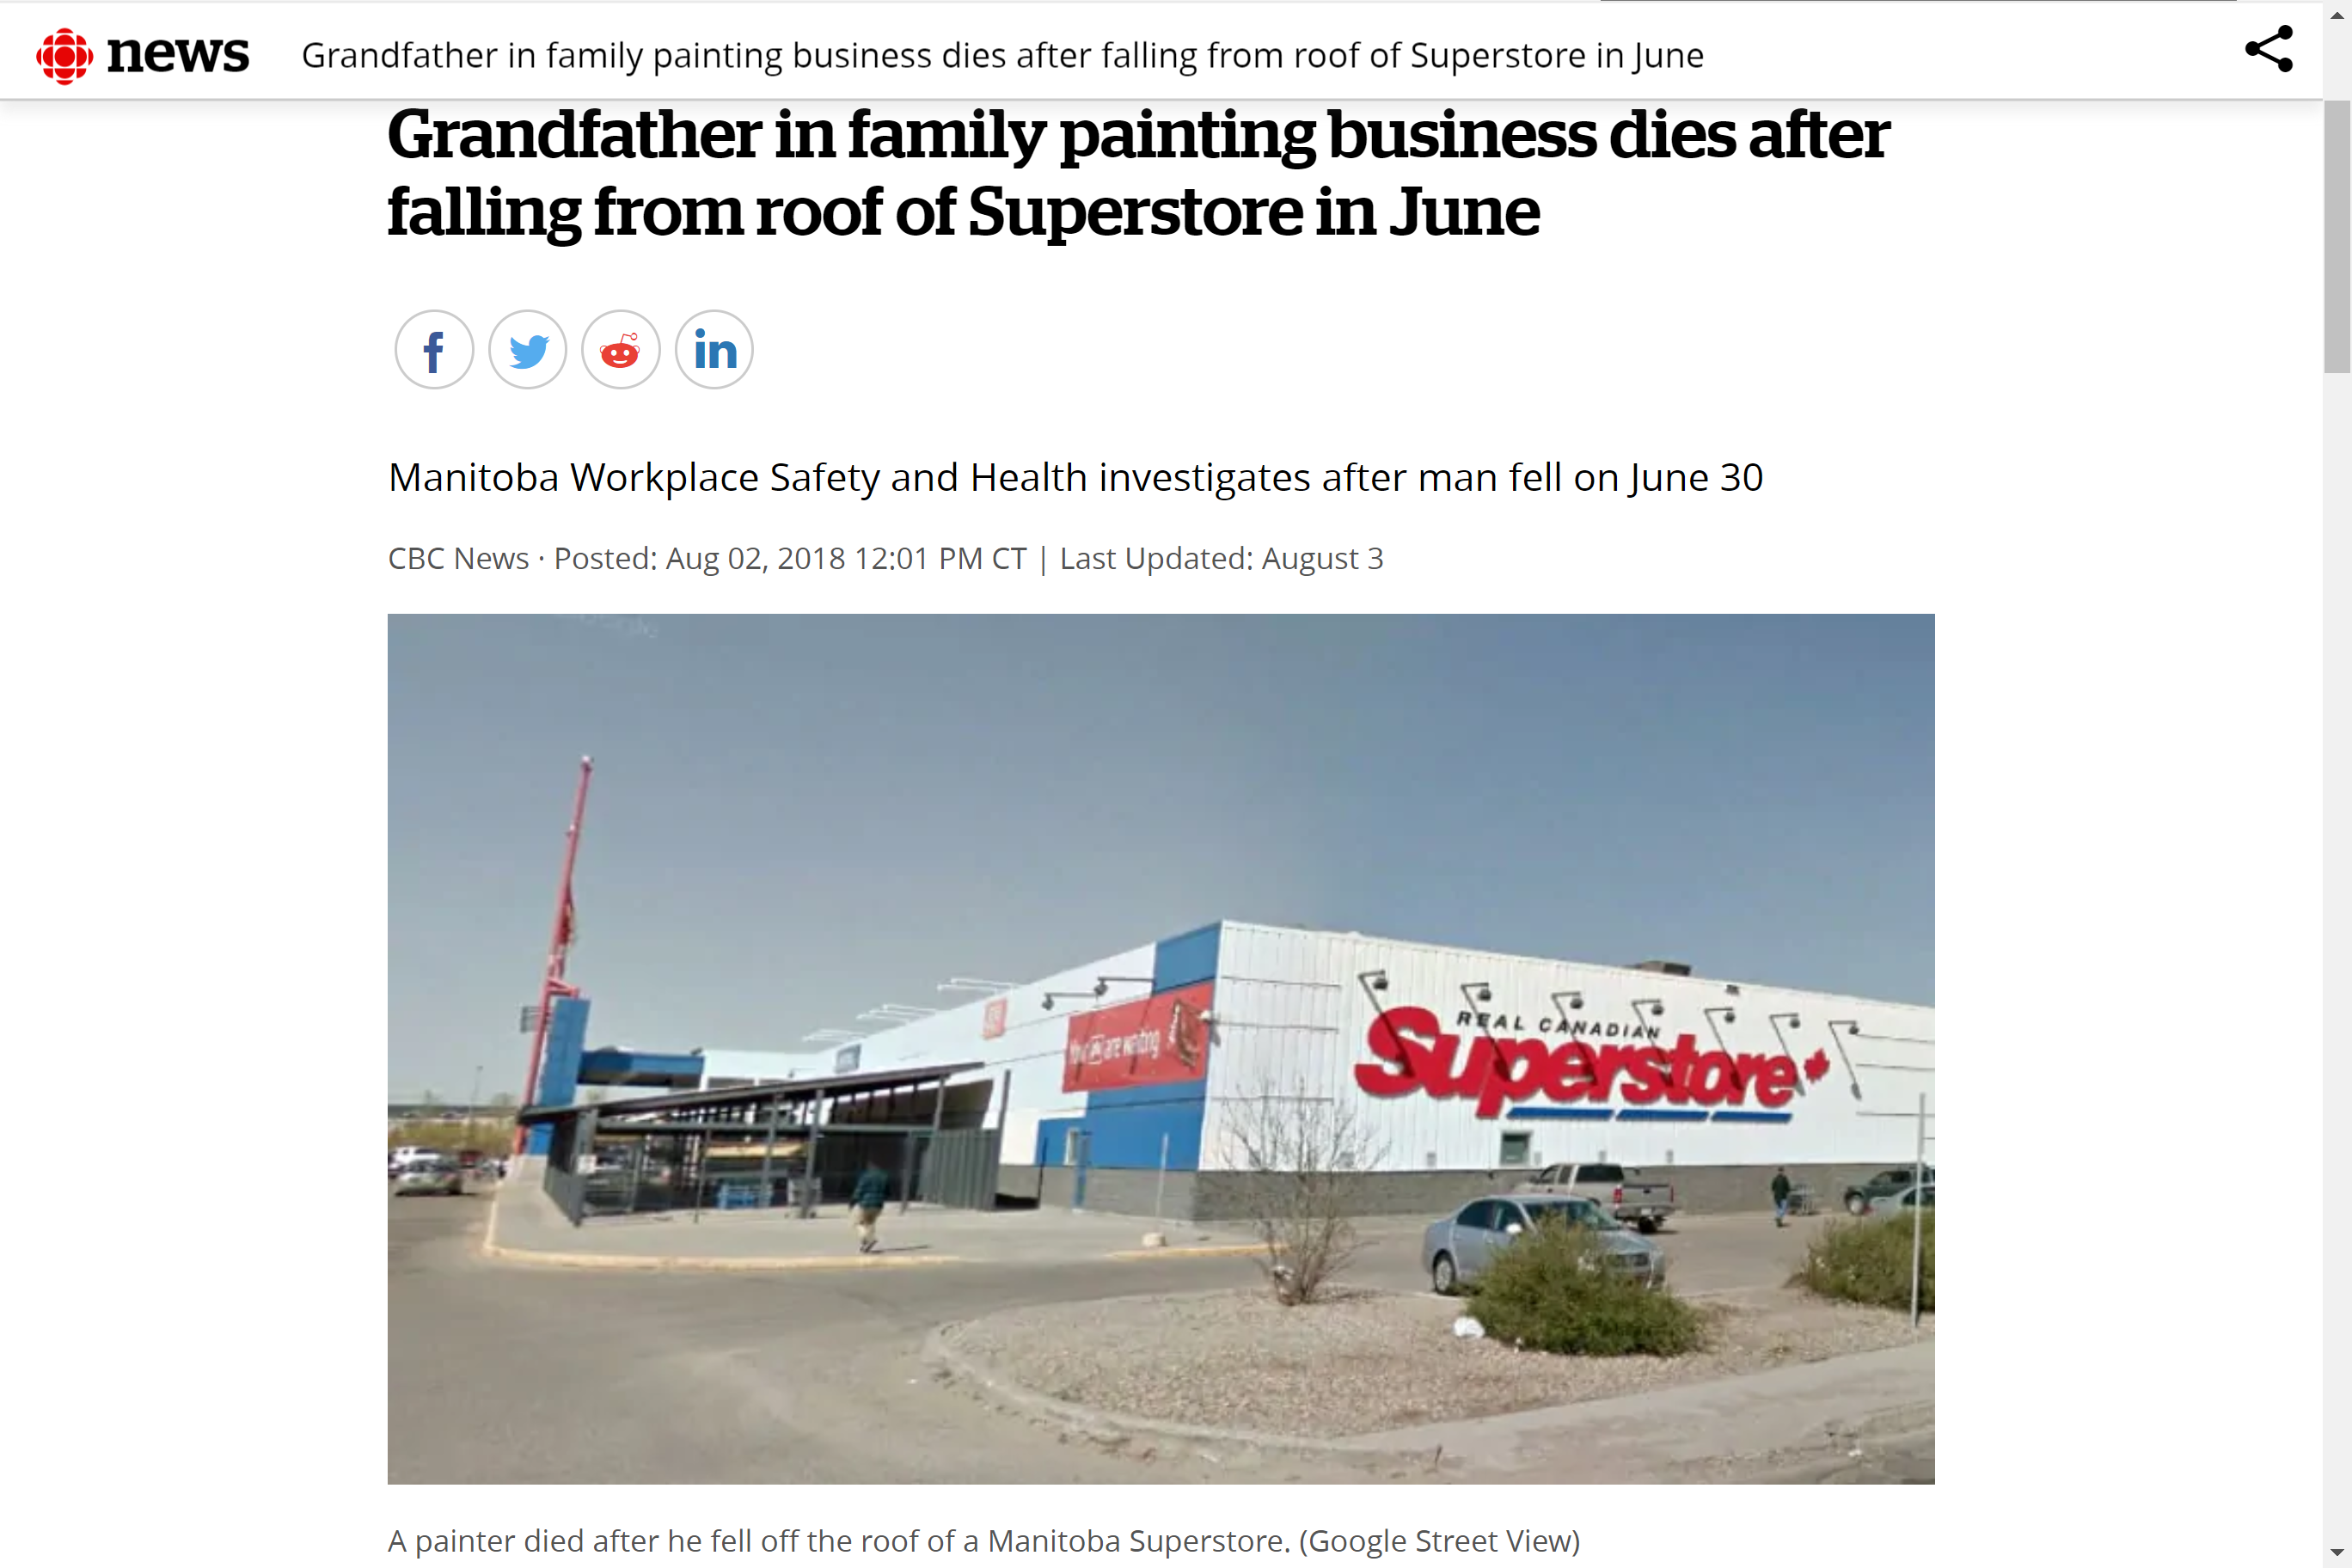 What leads to the collapse of the family business